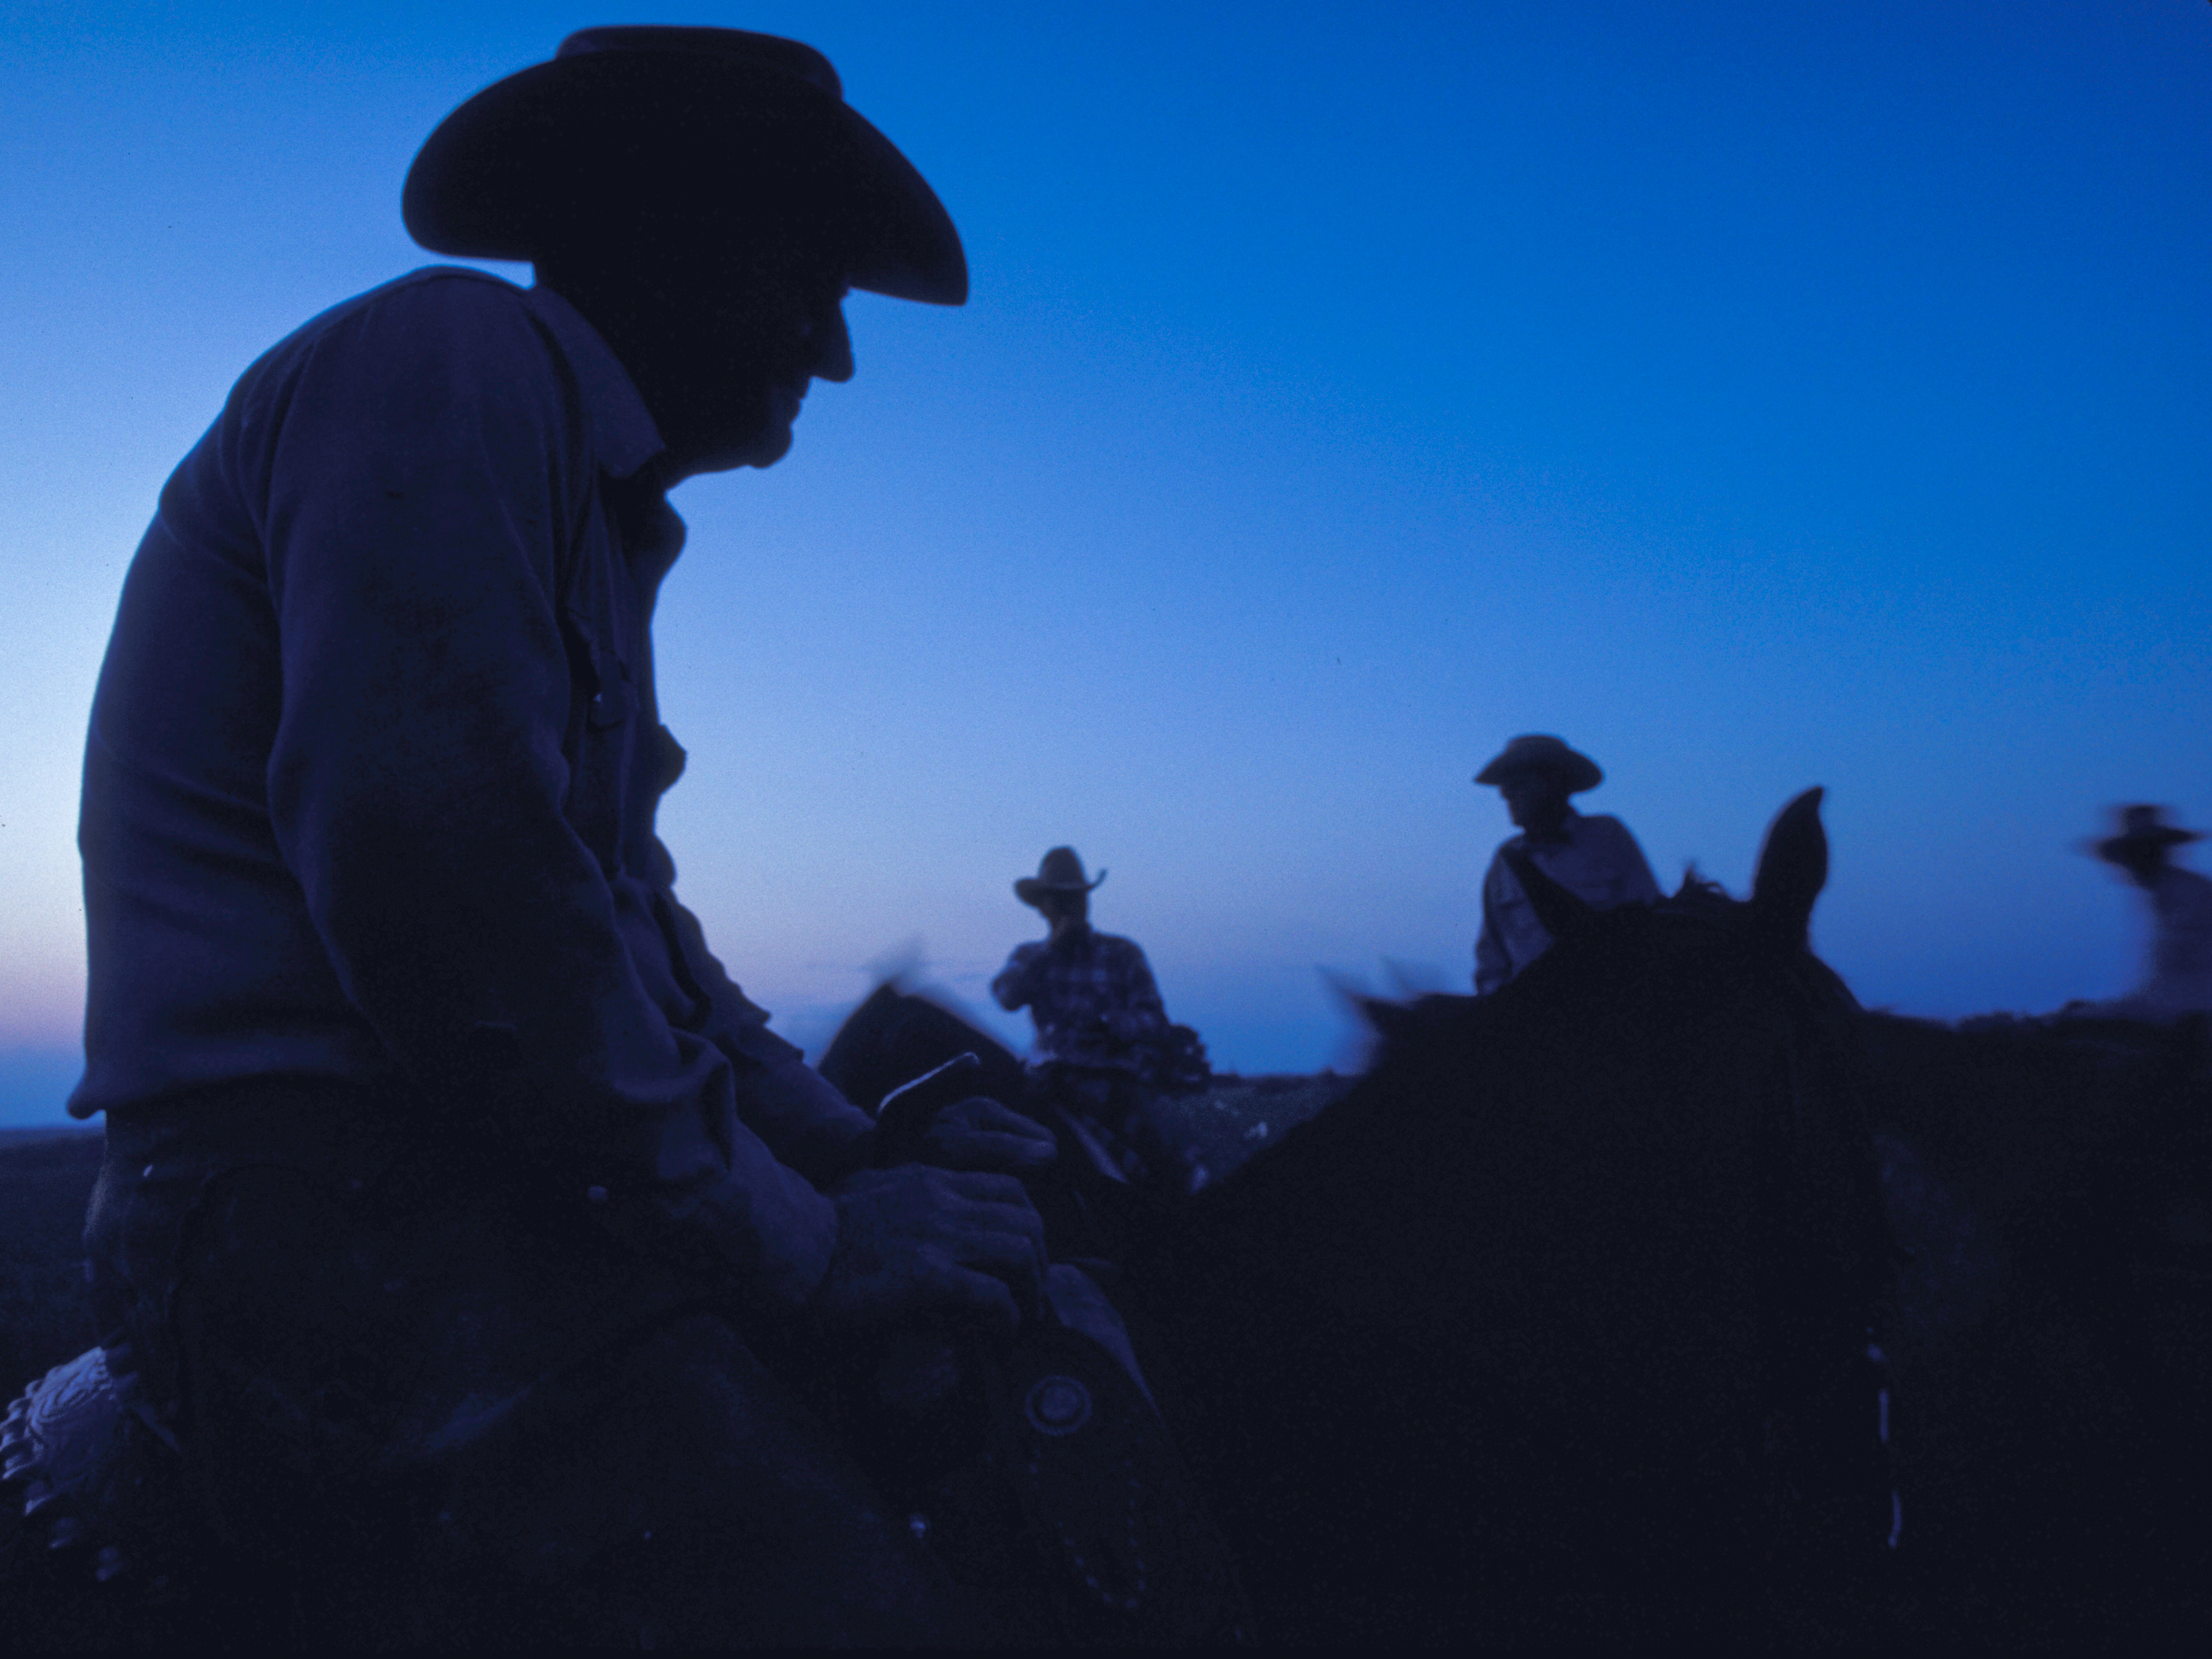 Cowboys saddle-up for the cattle round-up Copyright © Kipp Baker, All rights reserved